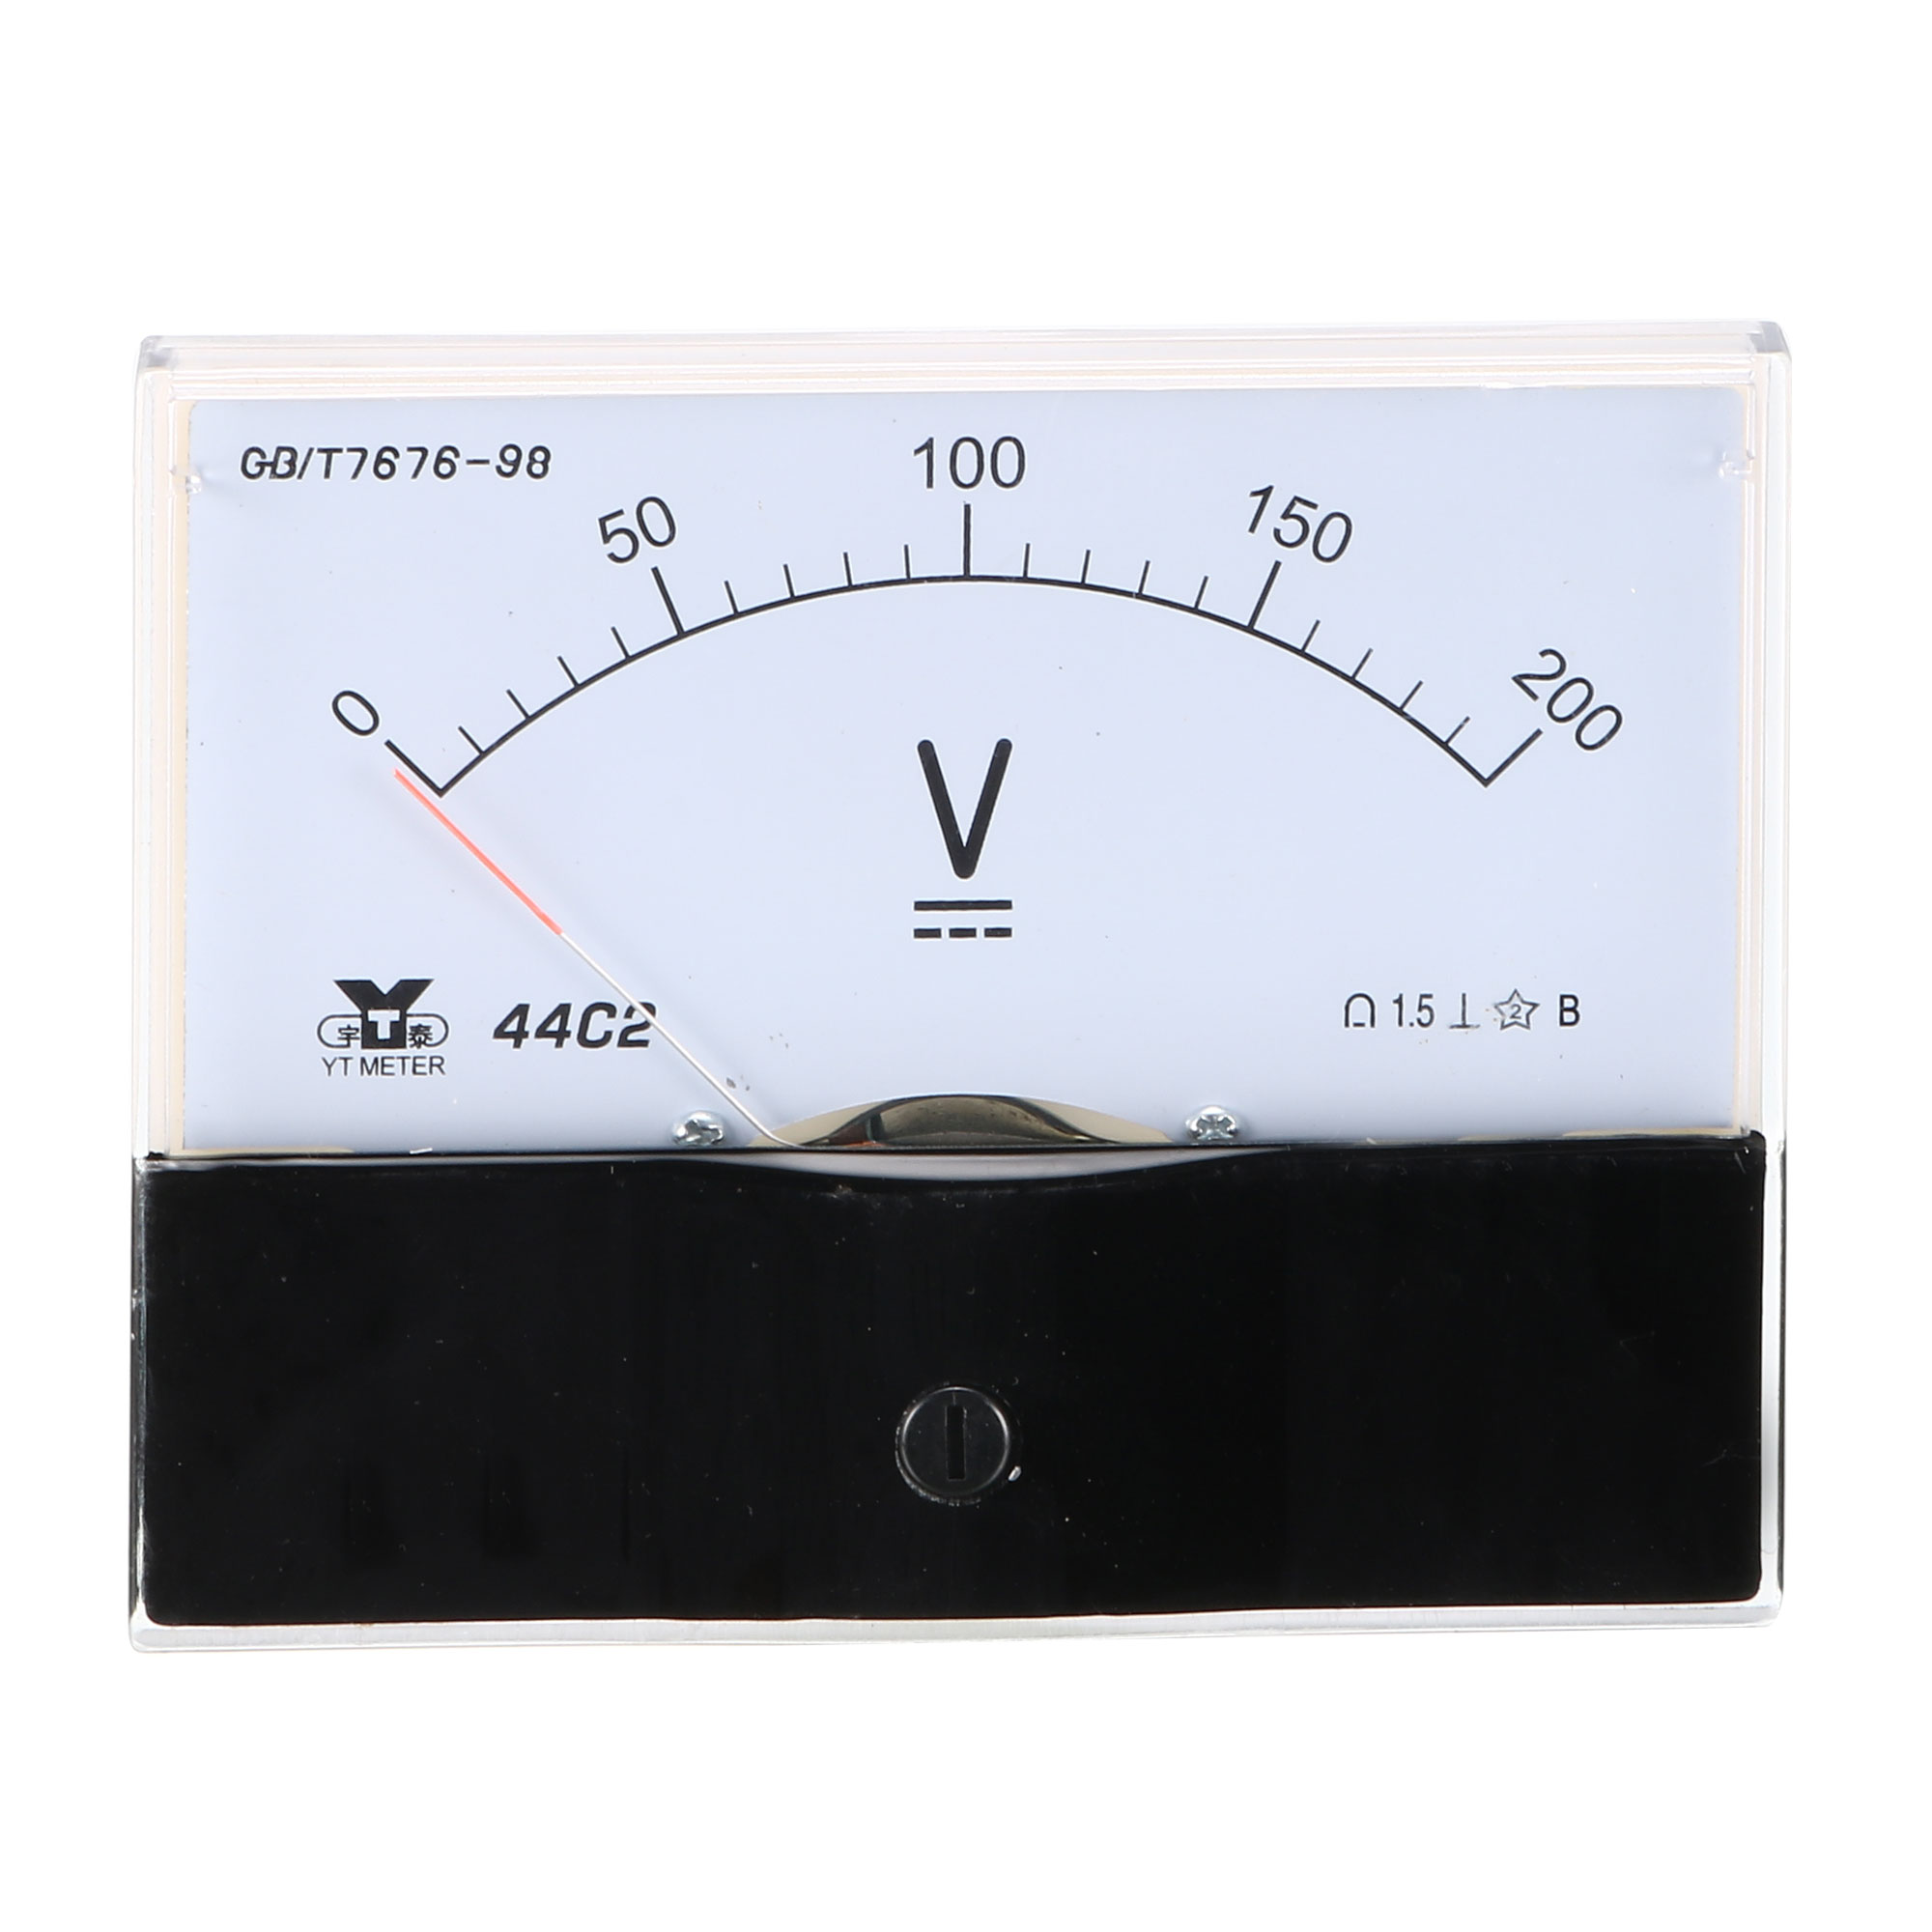 Rectangle Measurement Tool Analog Panel Voltmeter Volt Meter DC 0 - 200V Measuring Range 44C2